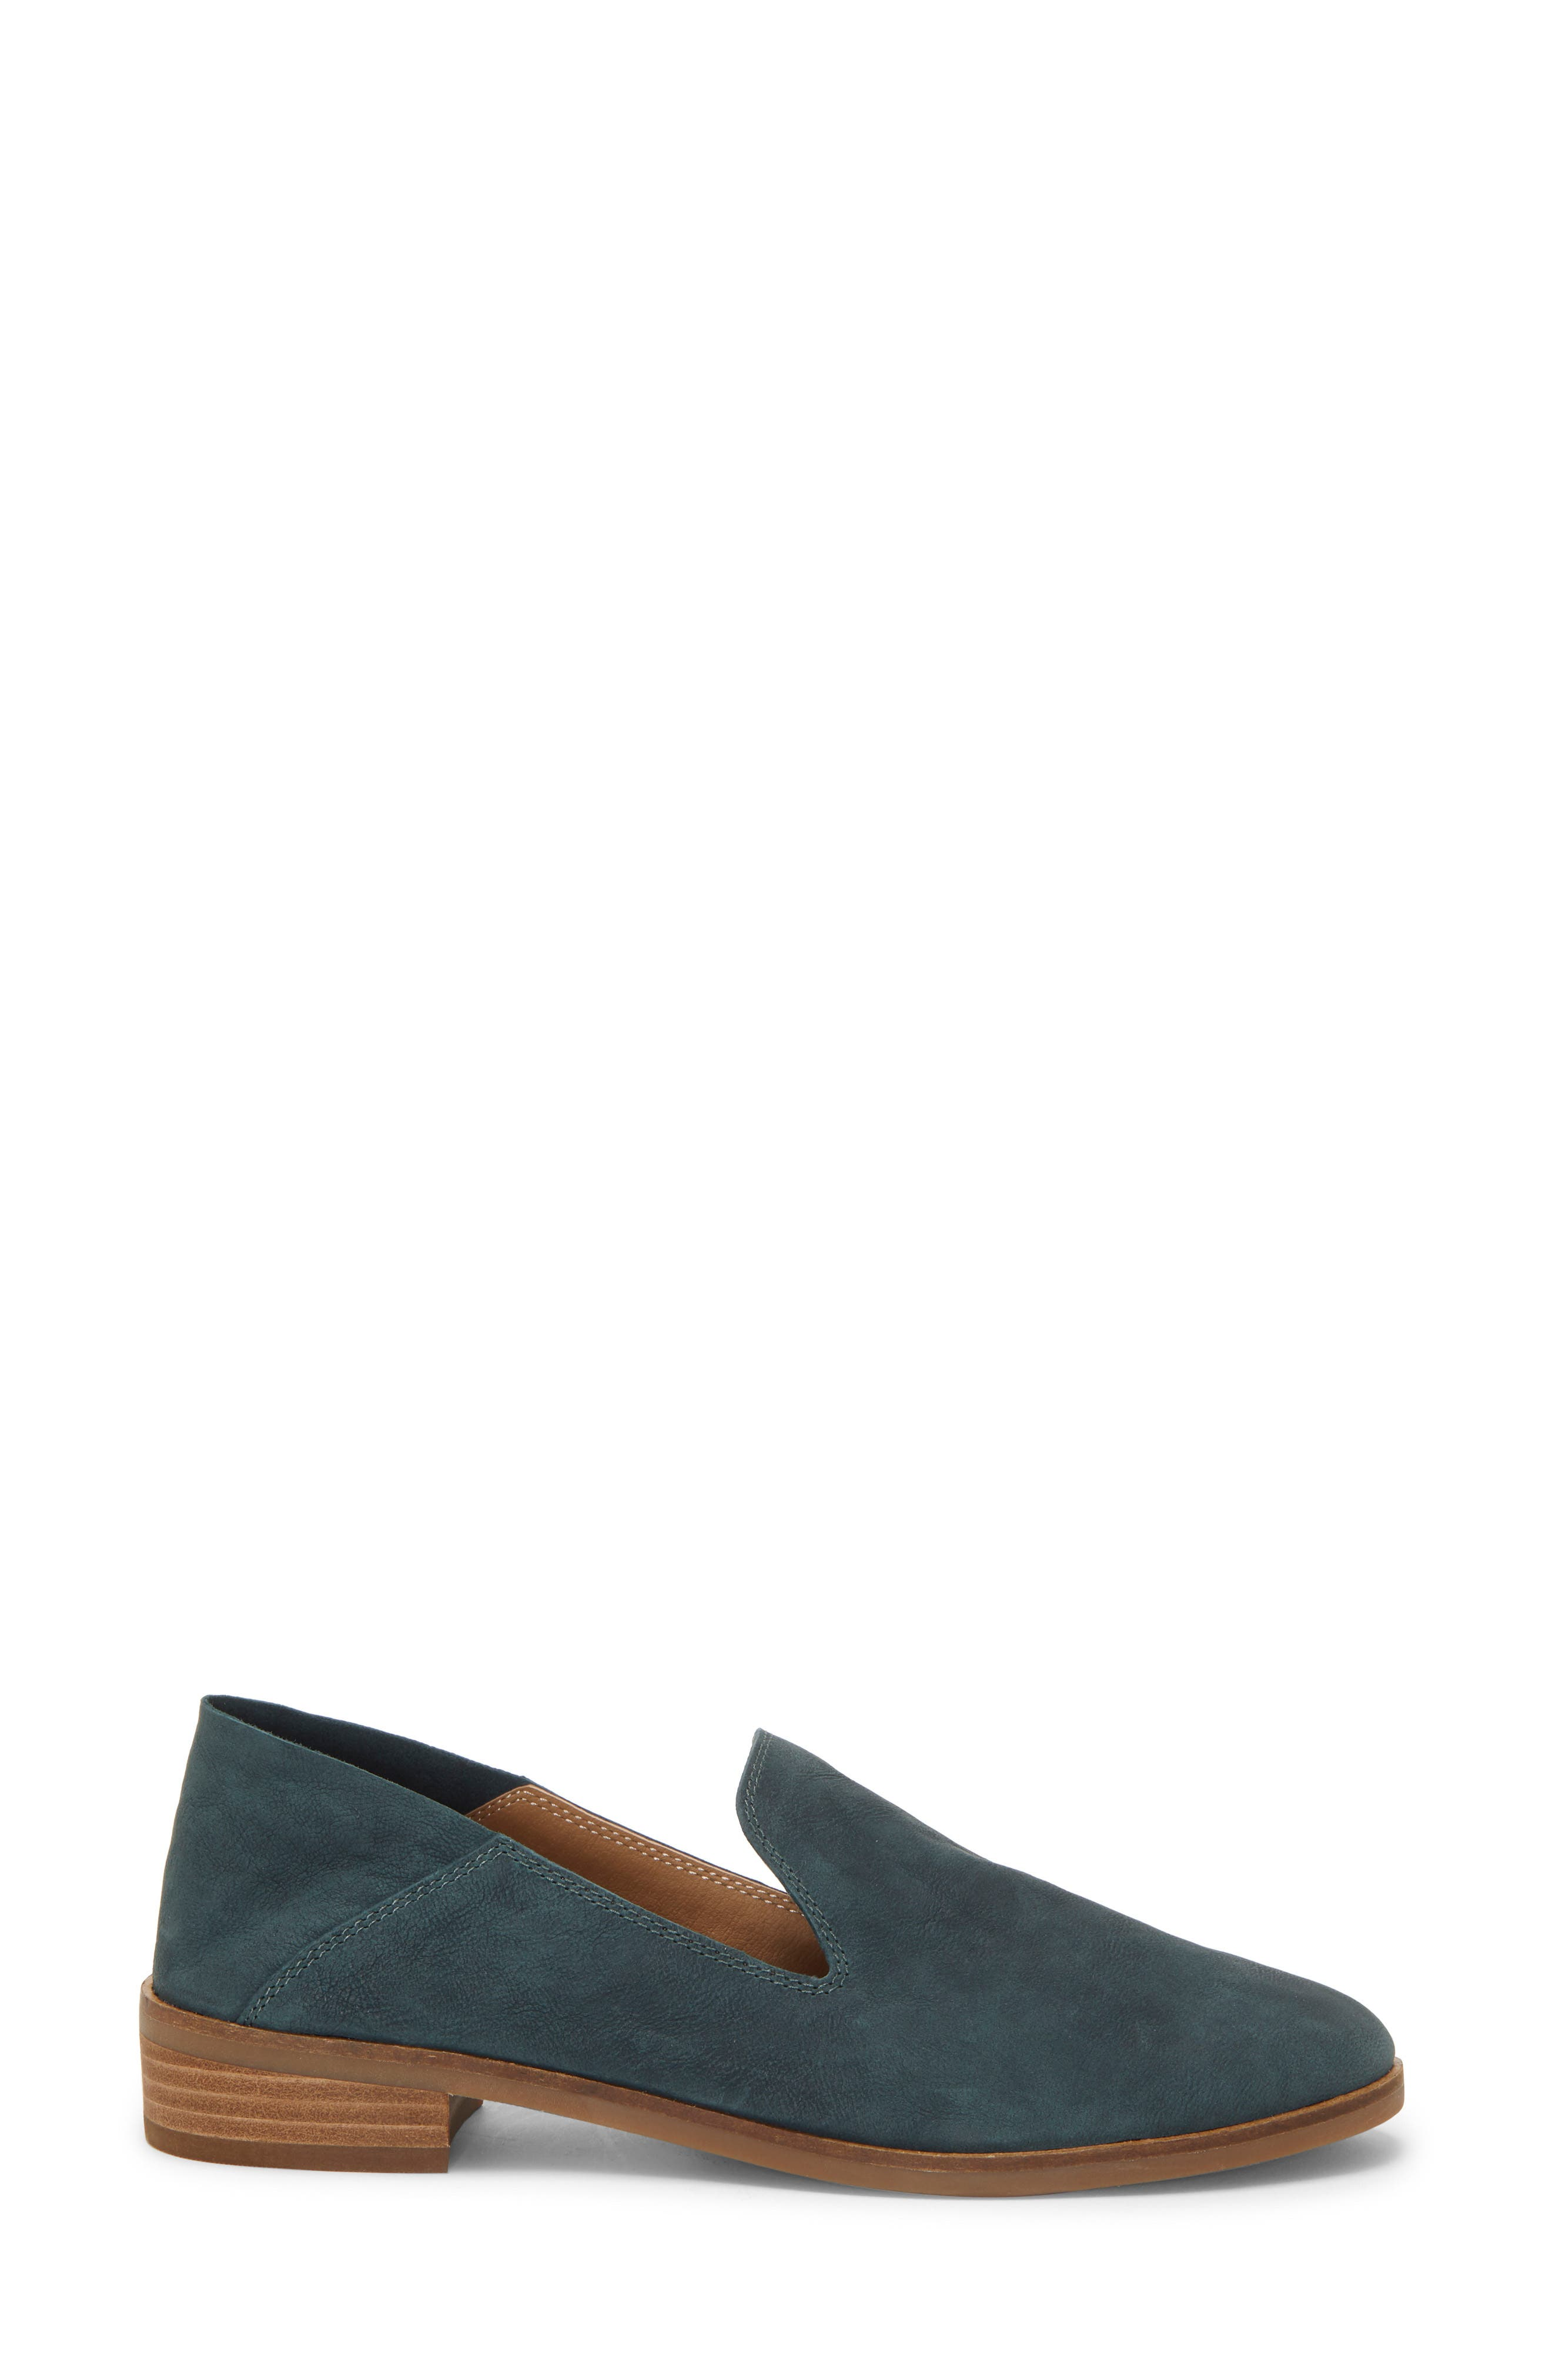 LUCKY BRAND, Cahill Flat, Alternate thumbnail 4, color, KELP LEATHER